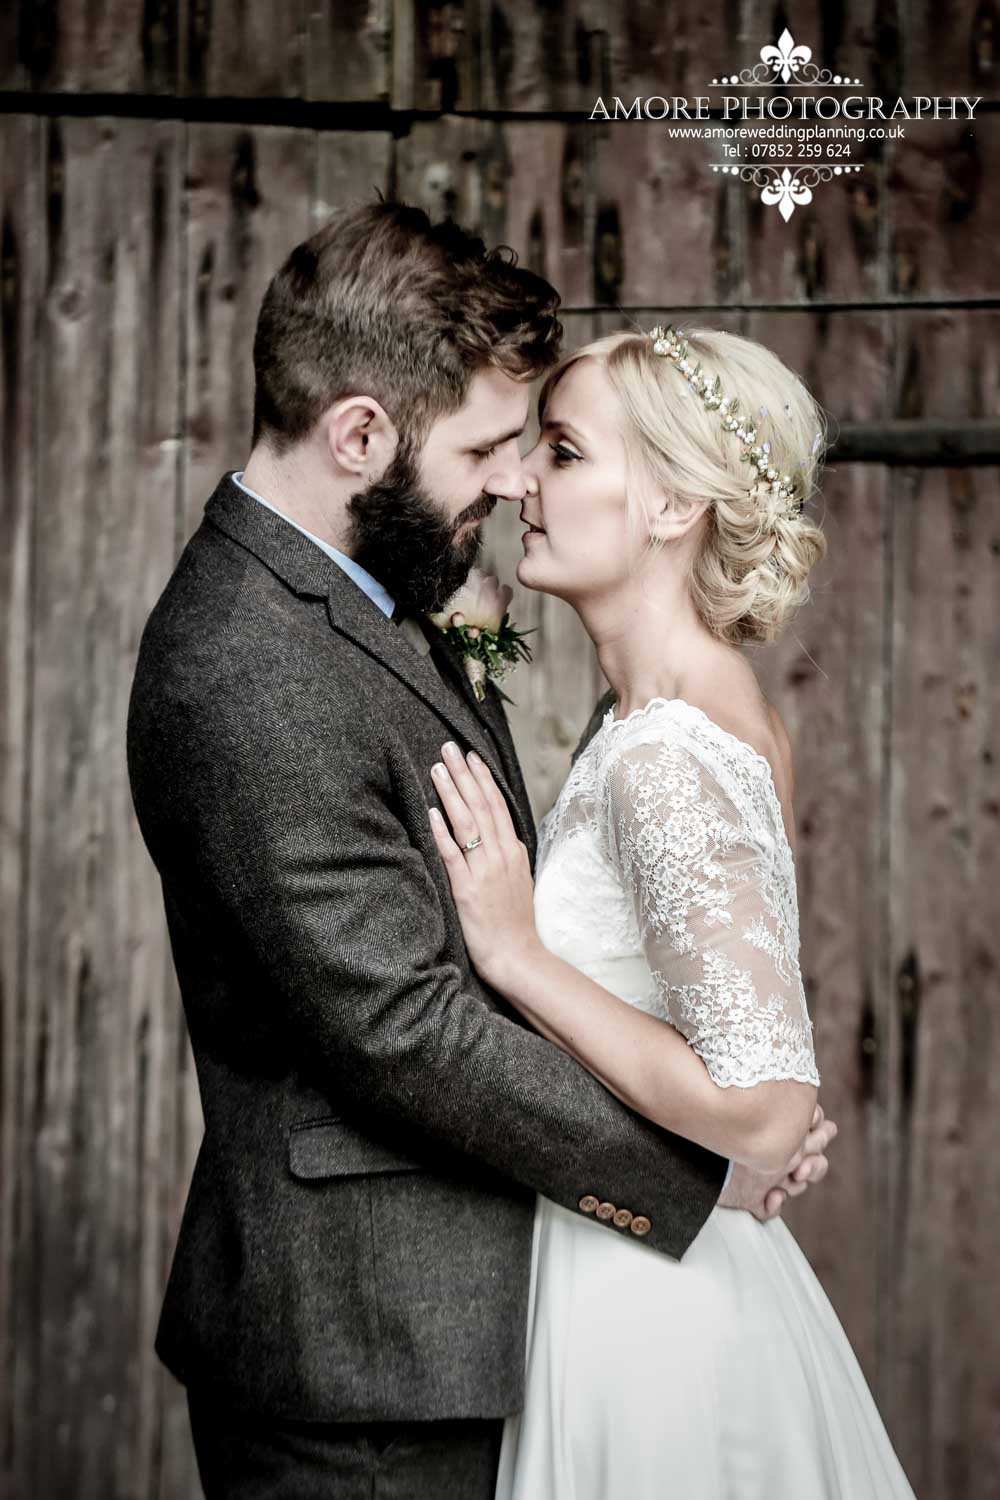 Vintage Wedding Photographer Wakefield North Yorkshire Leeds Wedding Photography Vintage Rustic Barn Weddings (130)